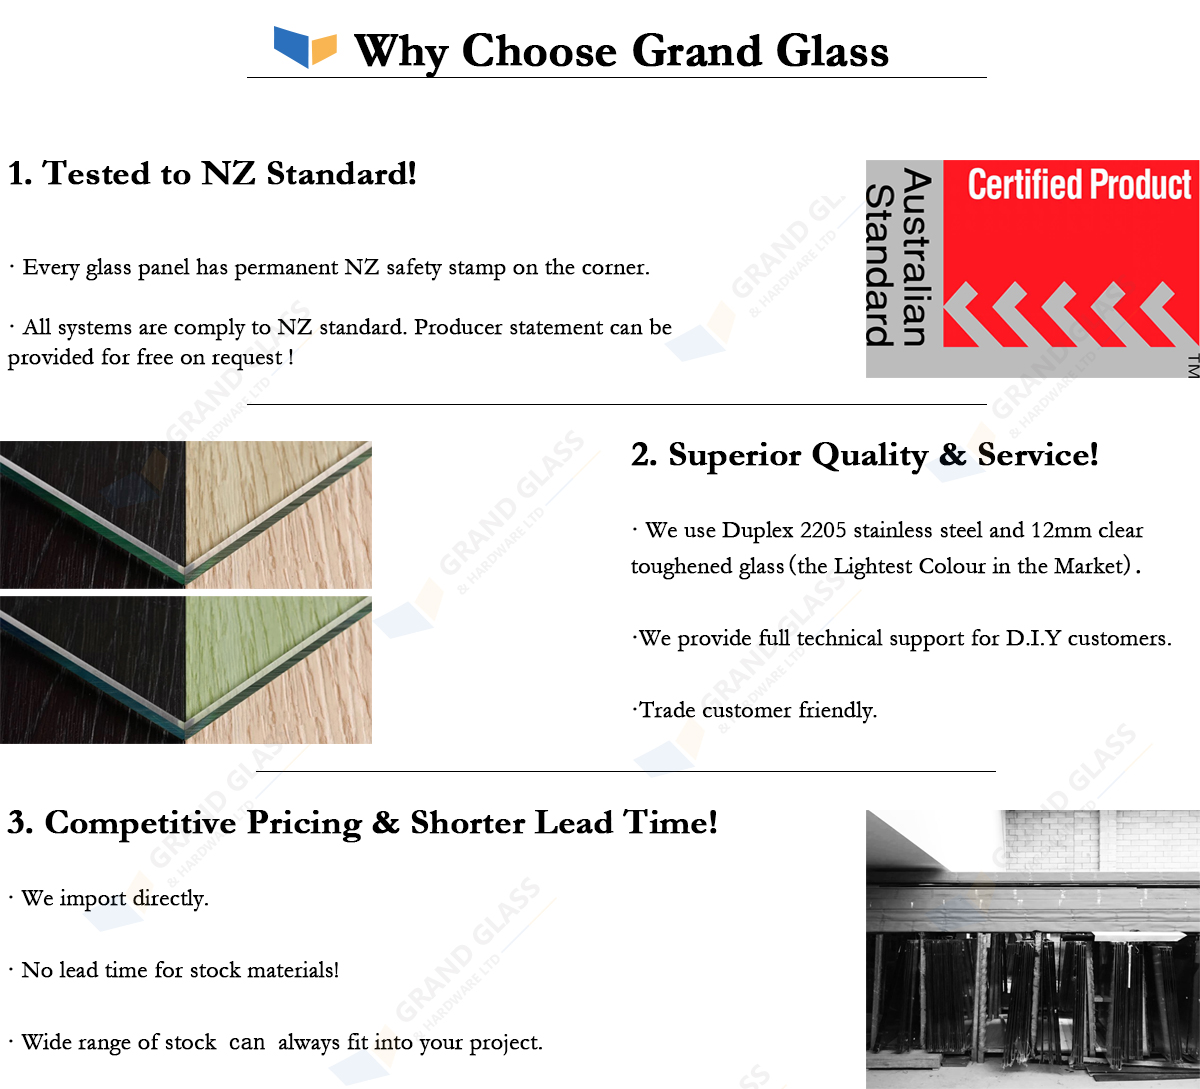 why-choose-grand-glass-5.jpg